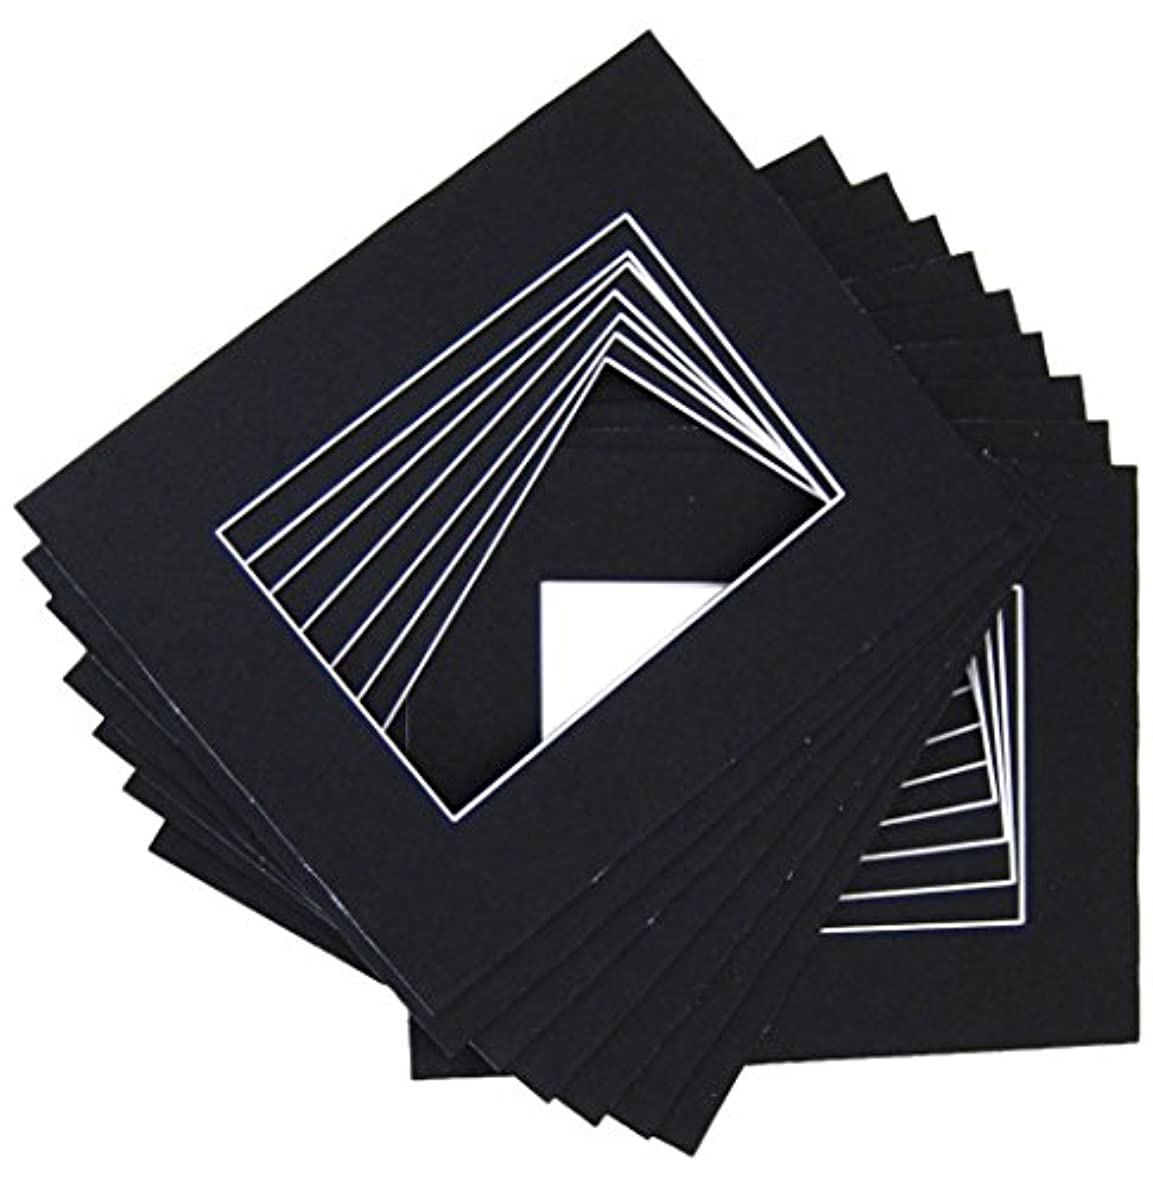 16x20 for 12x16 Black Mat with whitecore 100/pack